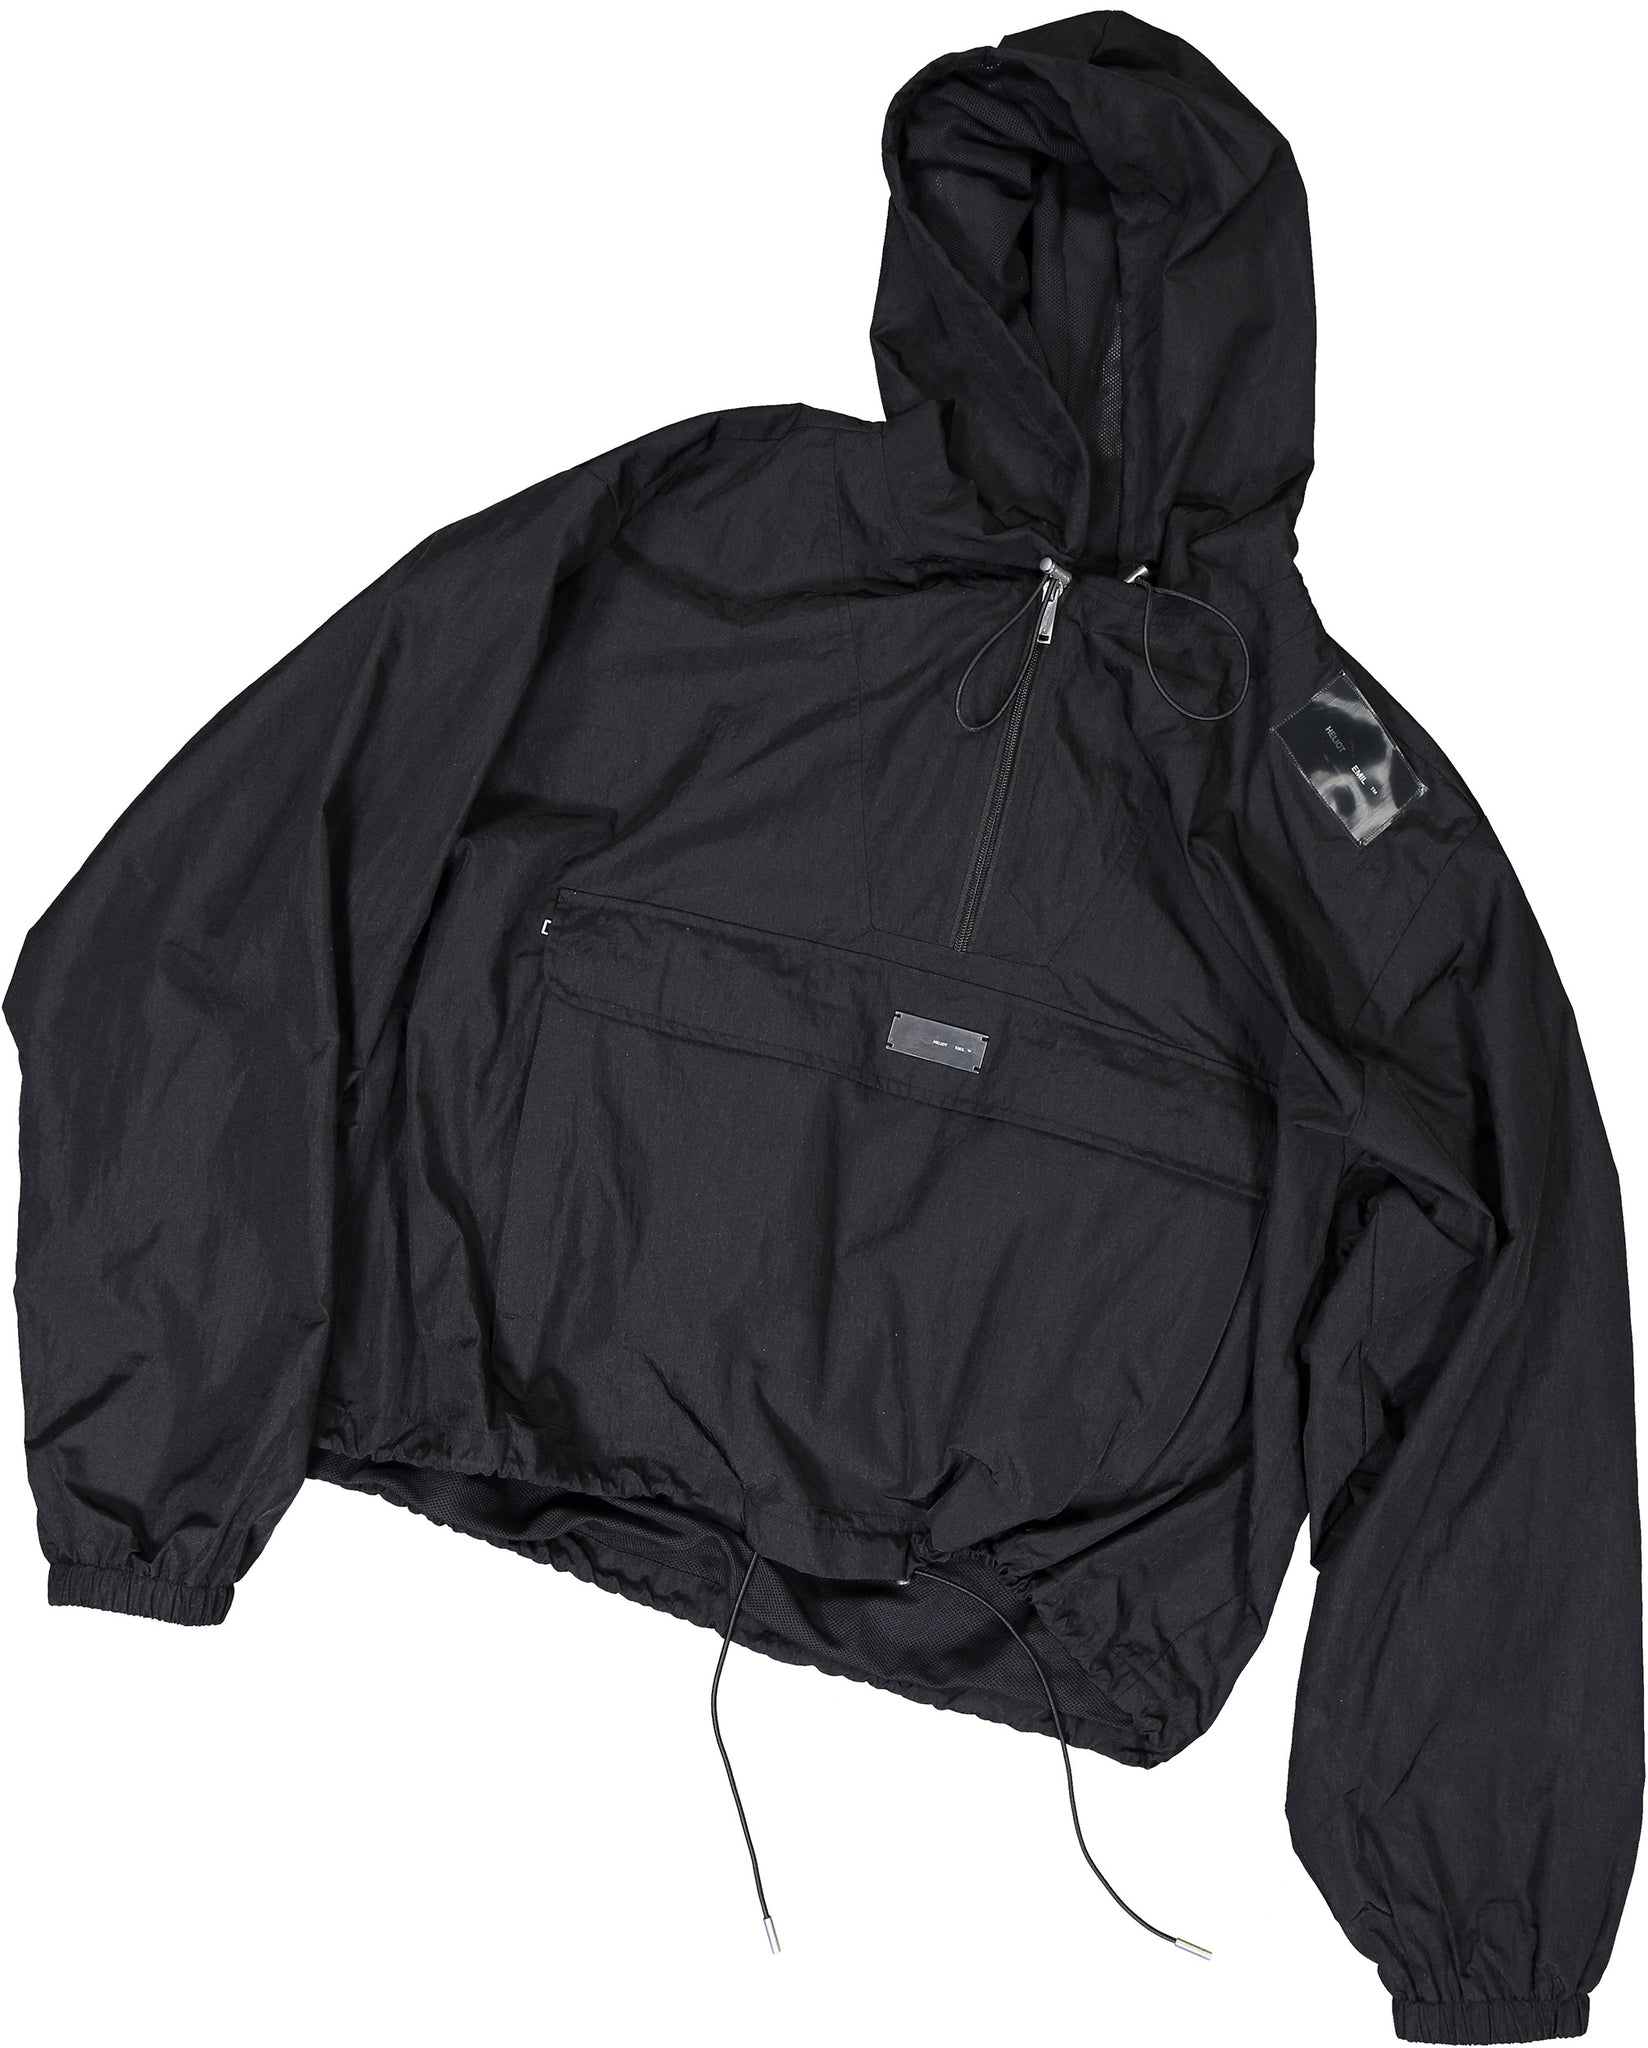 Anorak Convertible to Bag